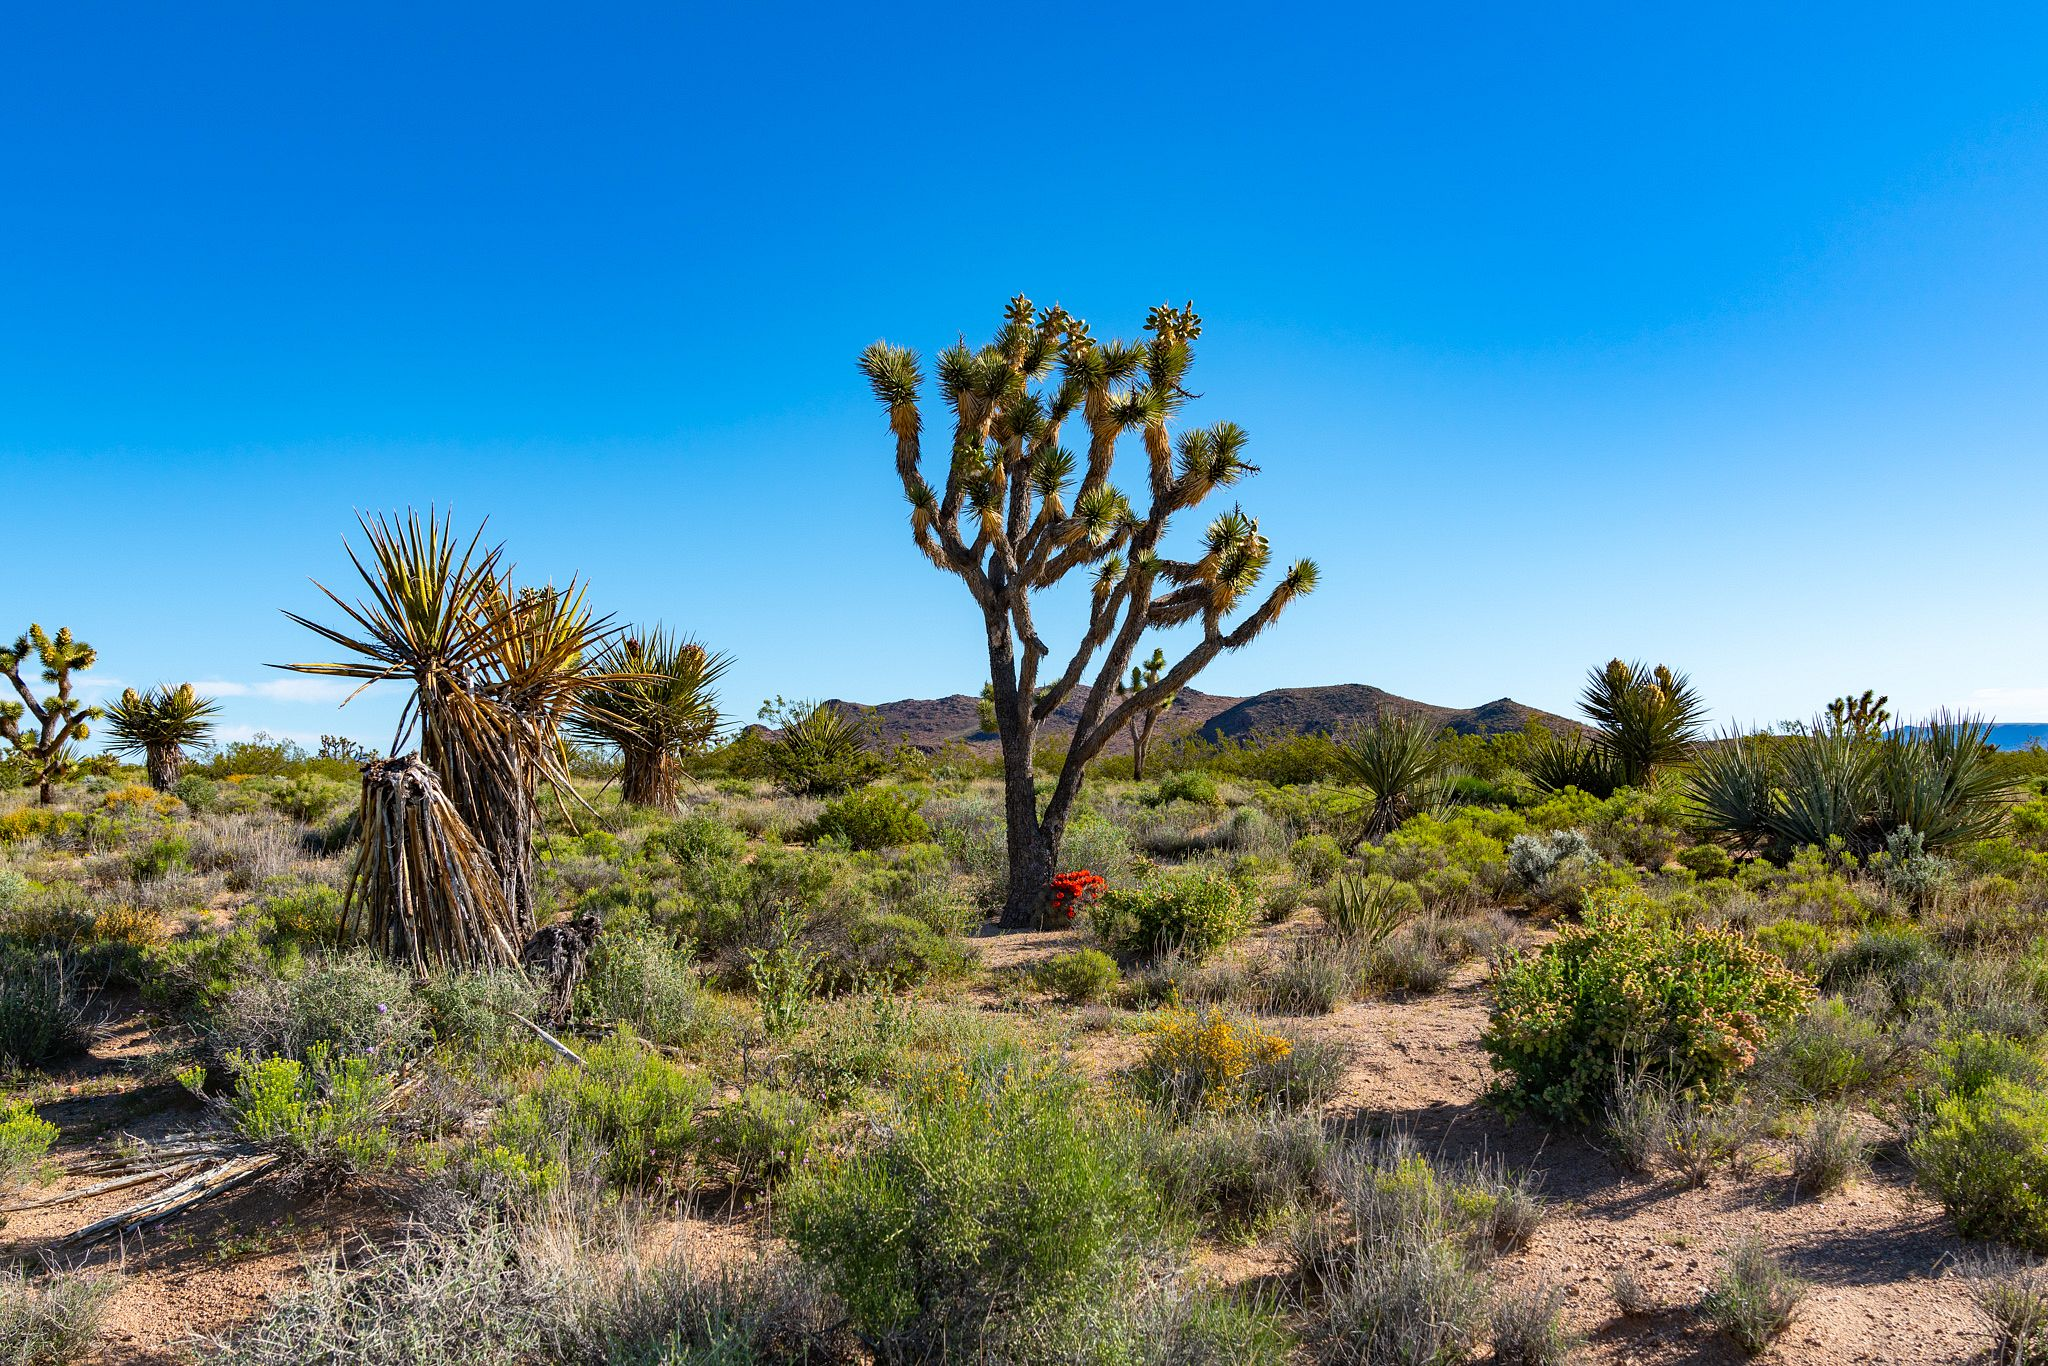 Joshua Trees in Mojave National Preserve